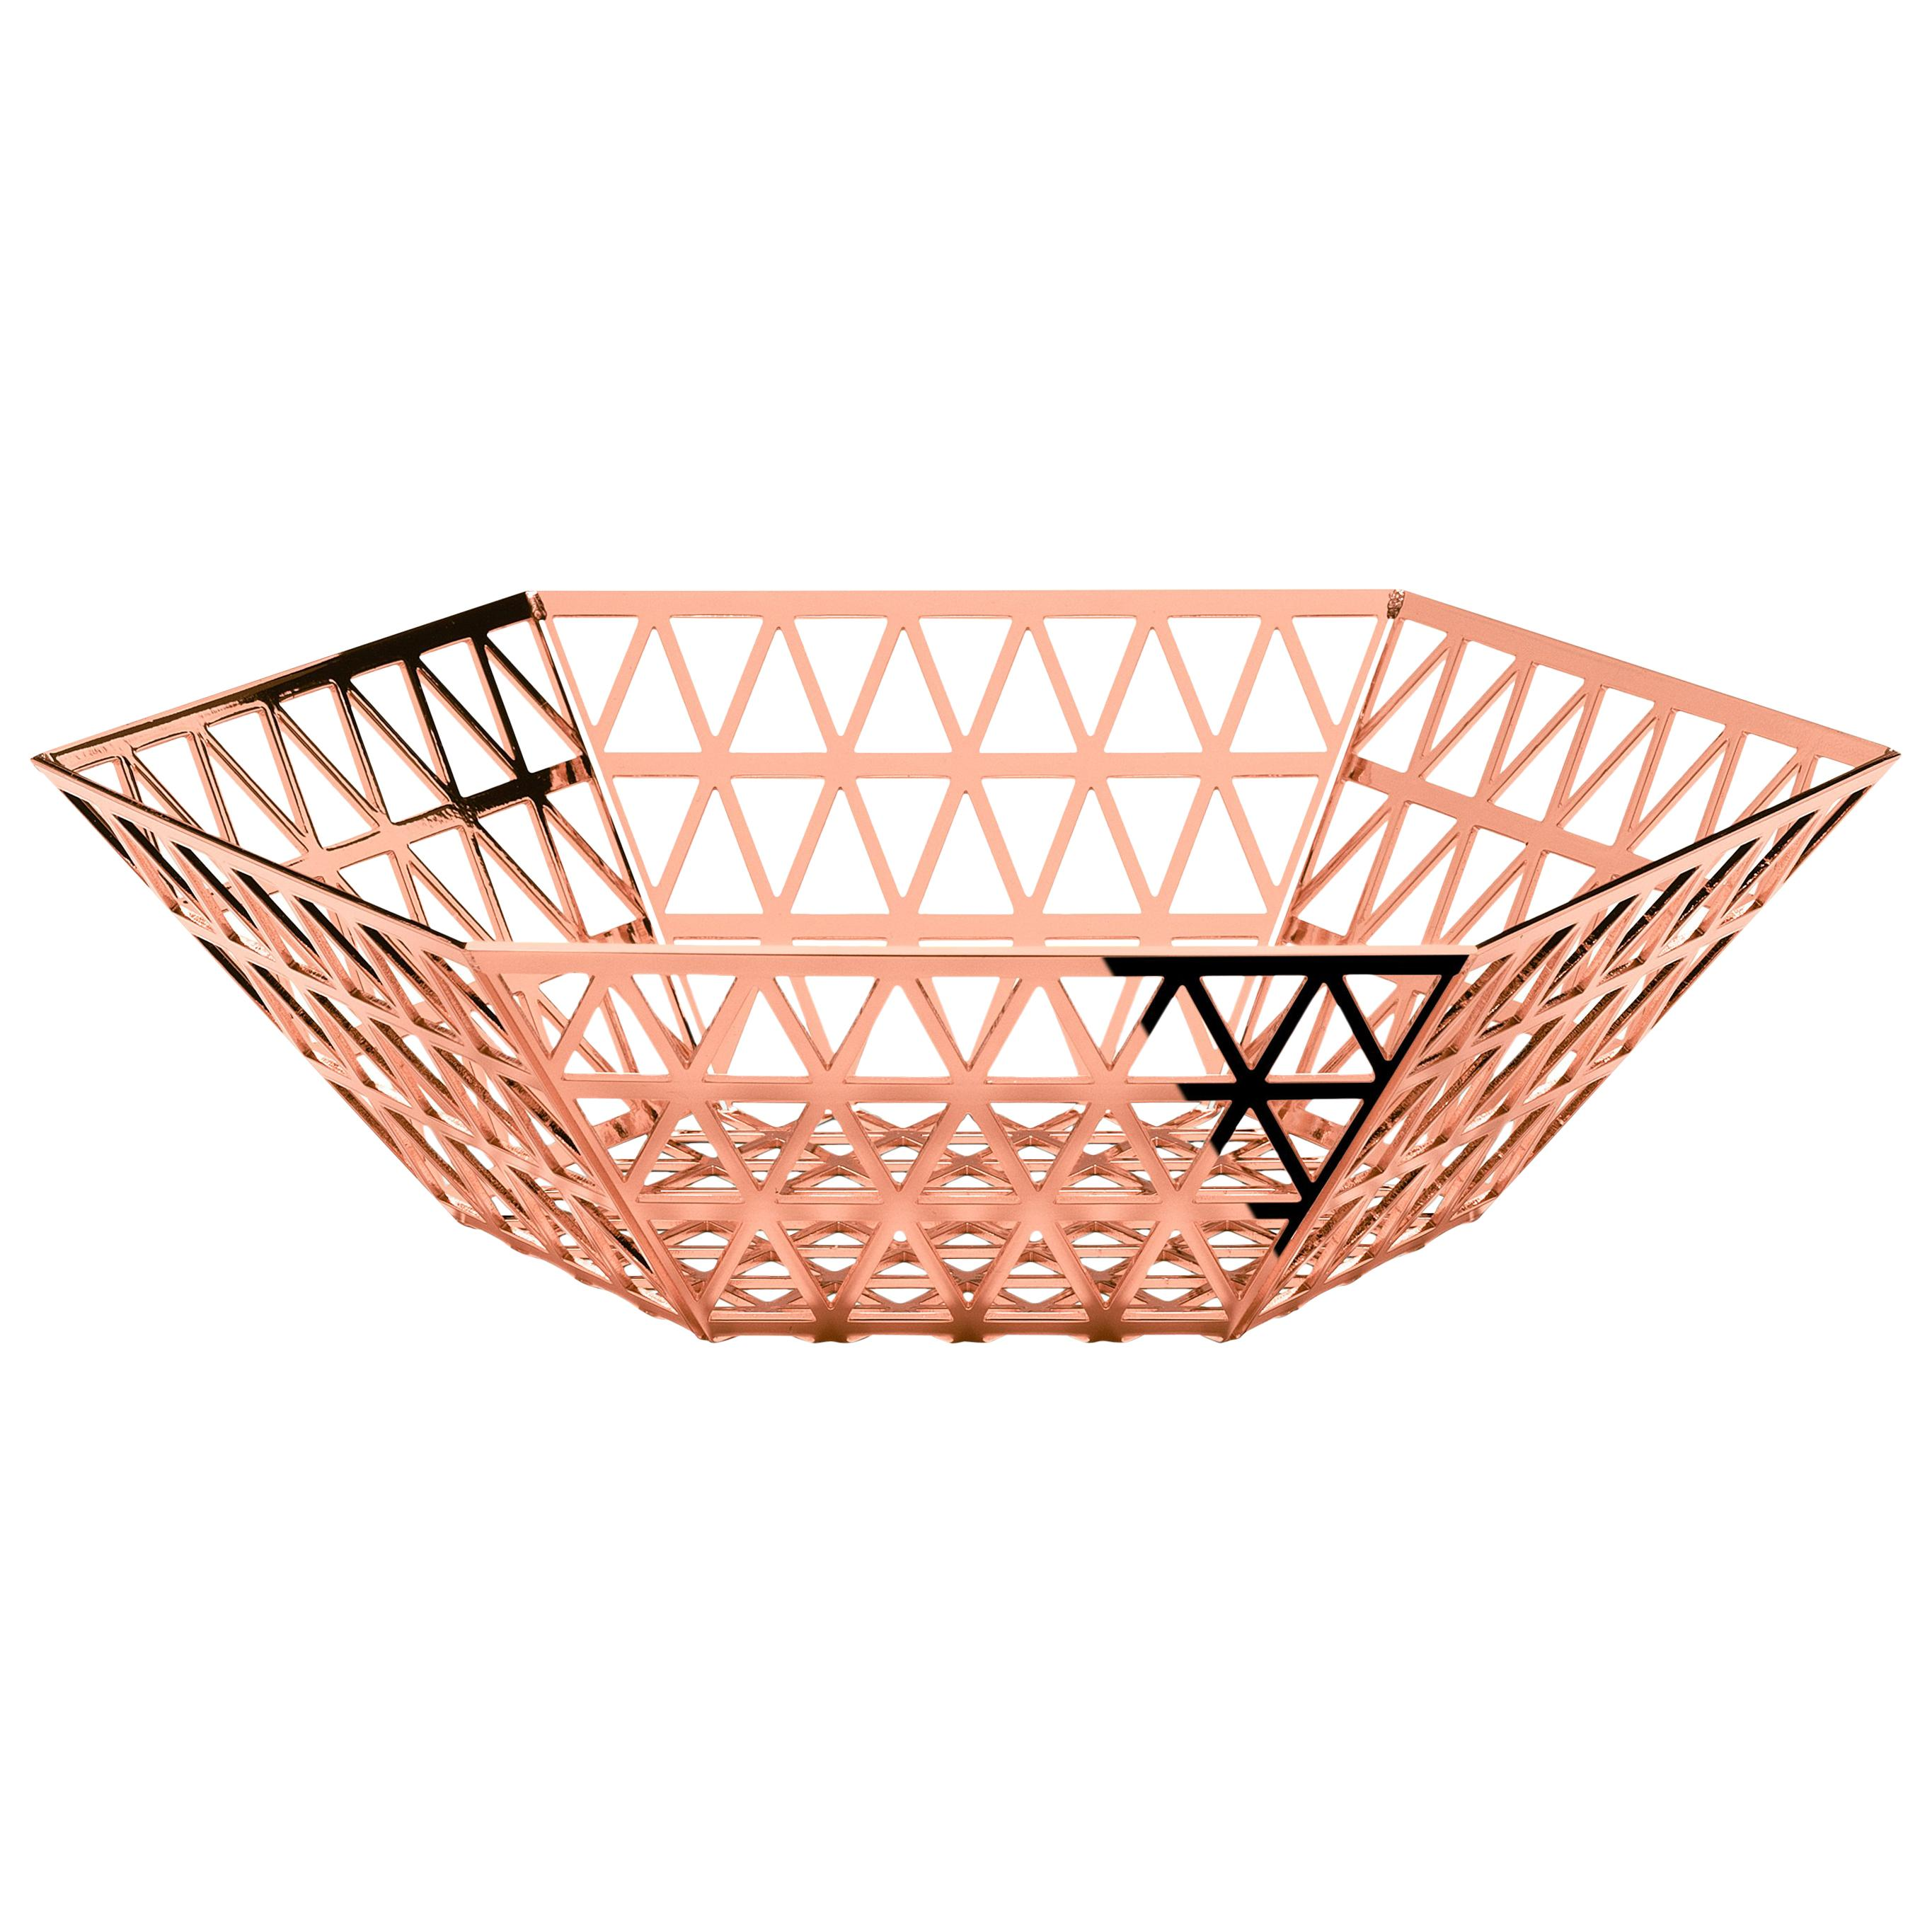 Ghidini 1961 Tip Top Center Bowl in Rose Gold by Richard Hutten